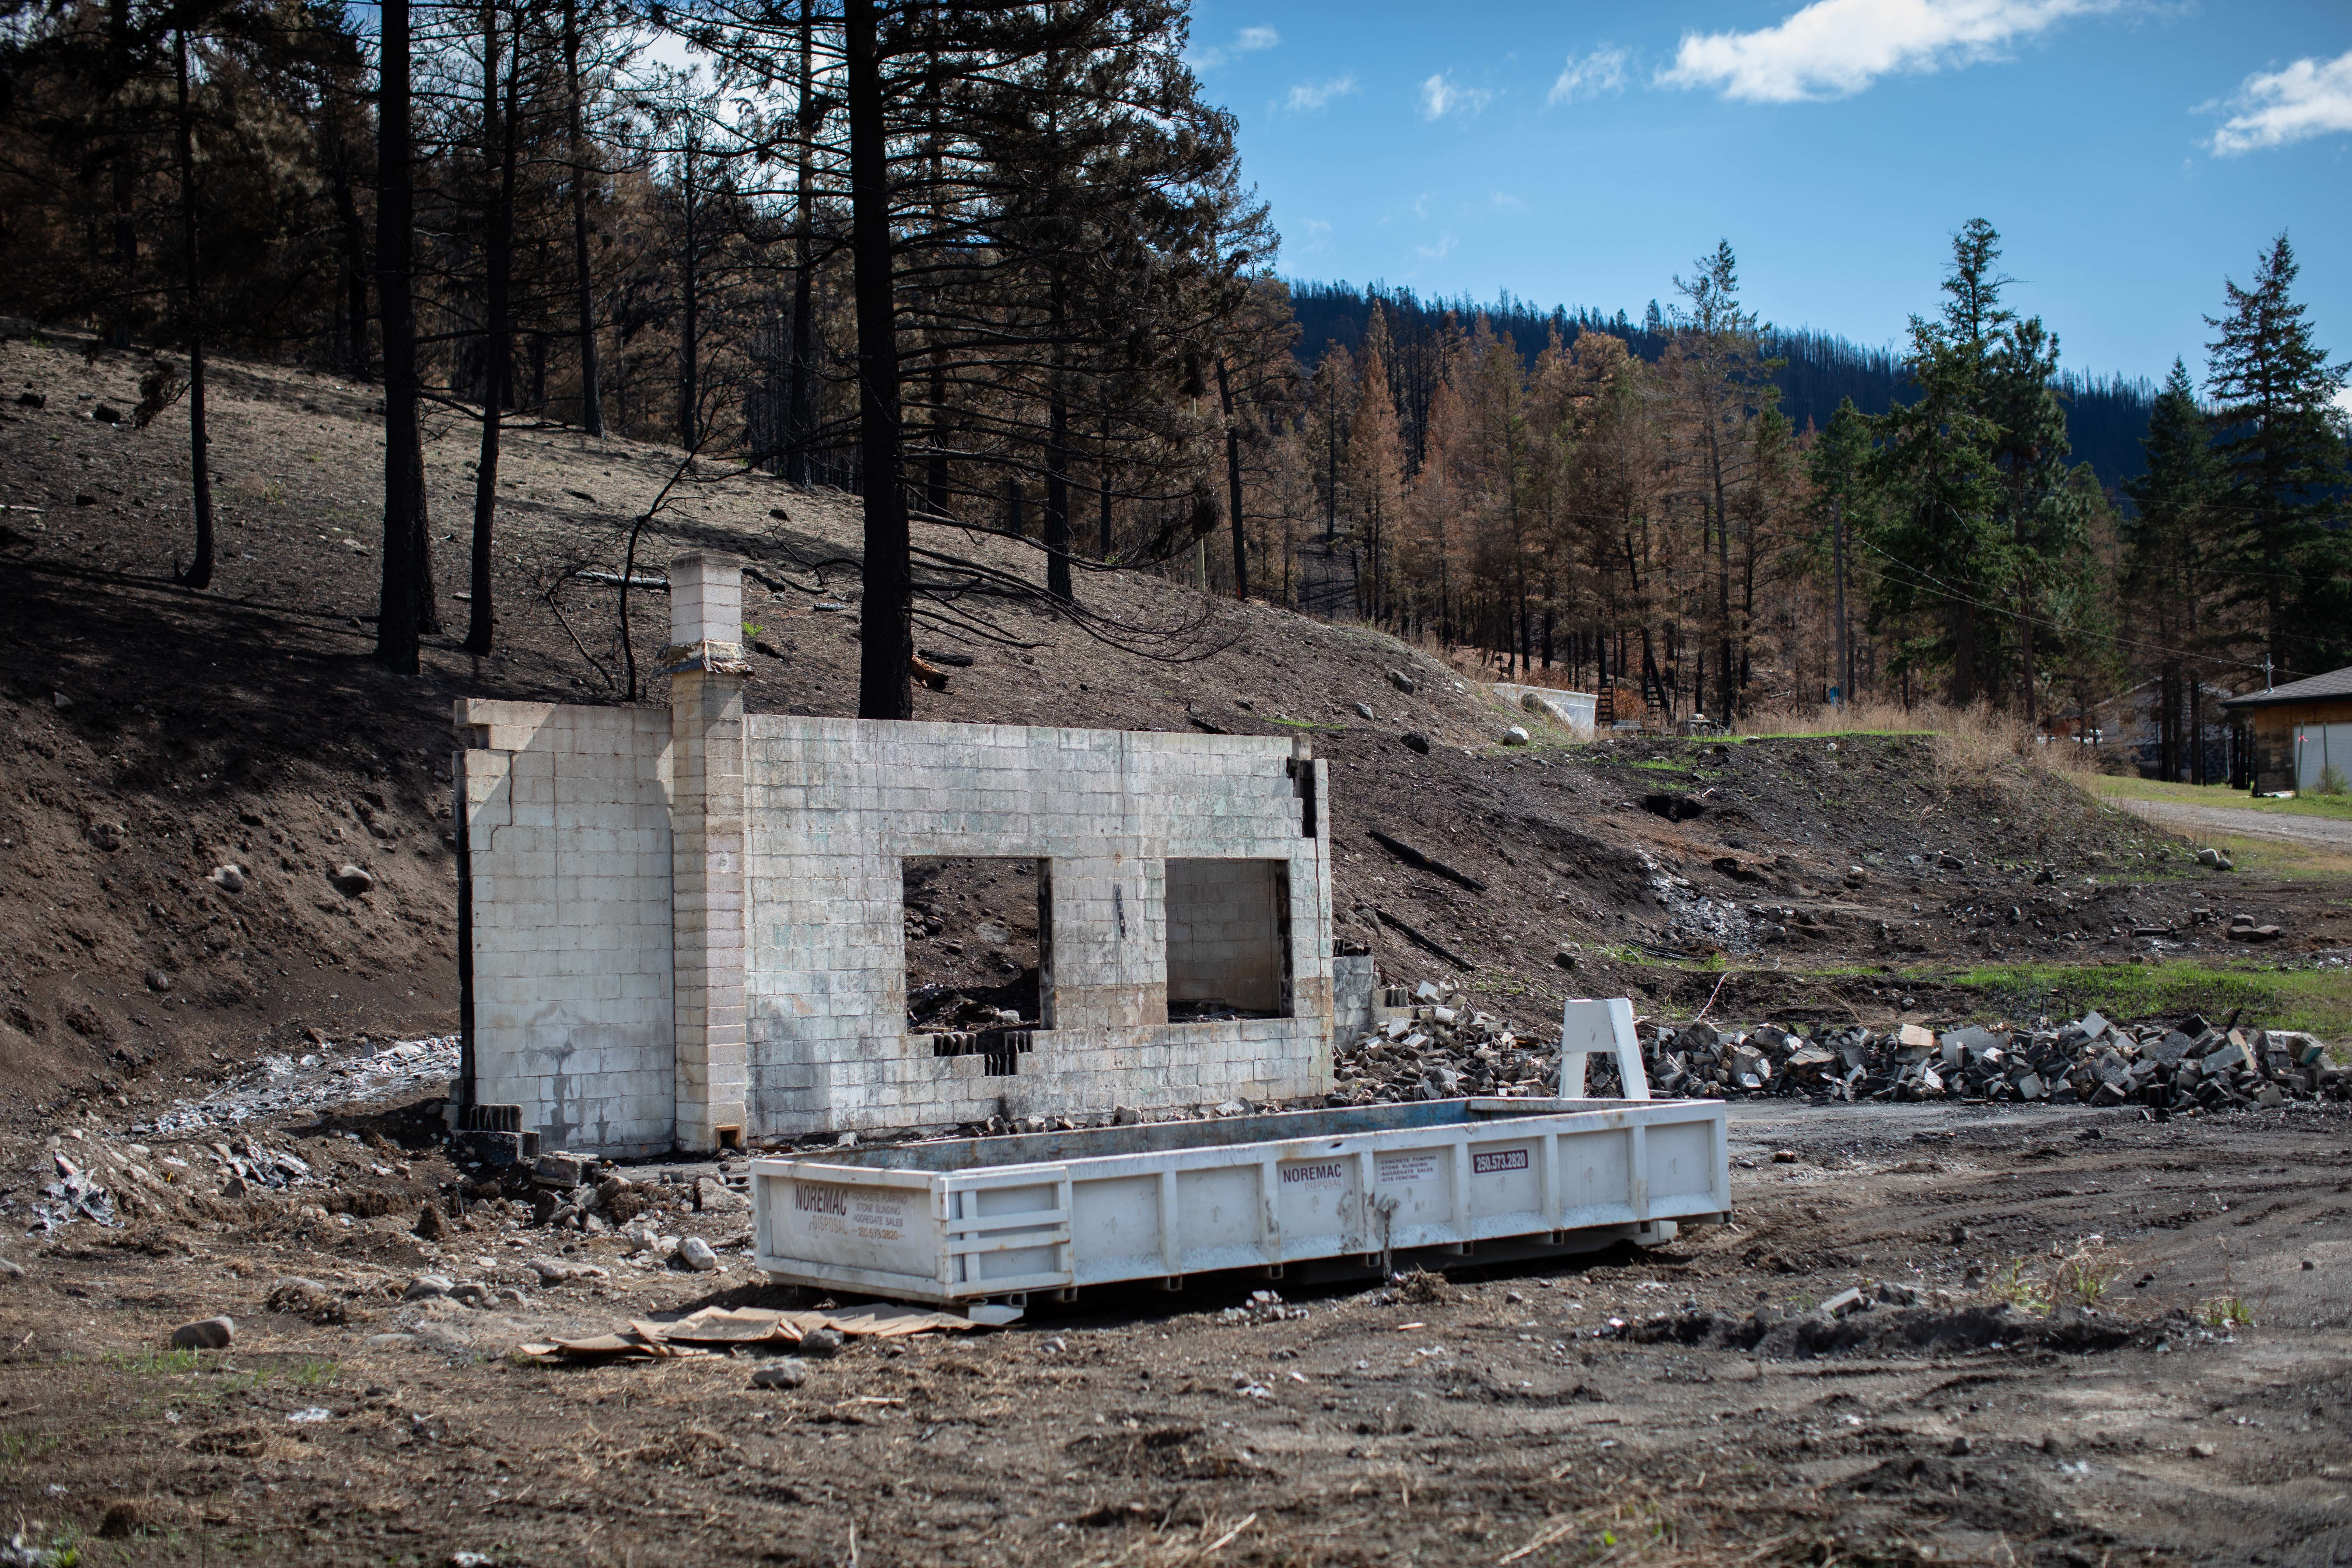 Remnants of a structure burned down by the White Rock Lake wildfire, in Monte Lake, B.C., on Sept. 1. (Maggie MacPherson/CBC)